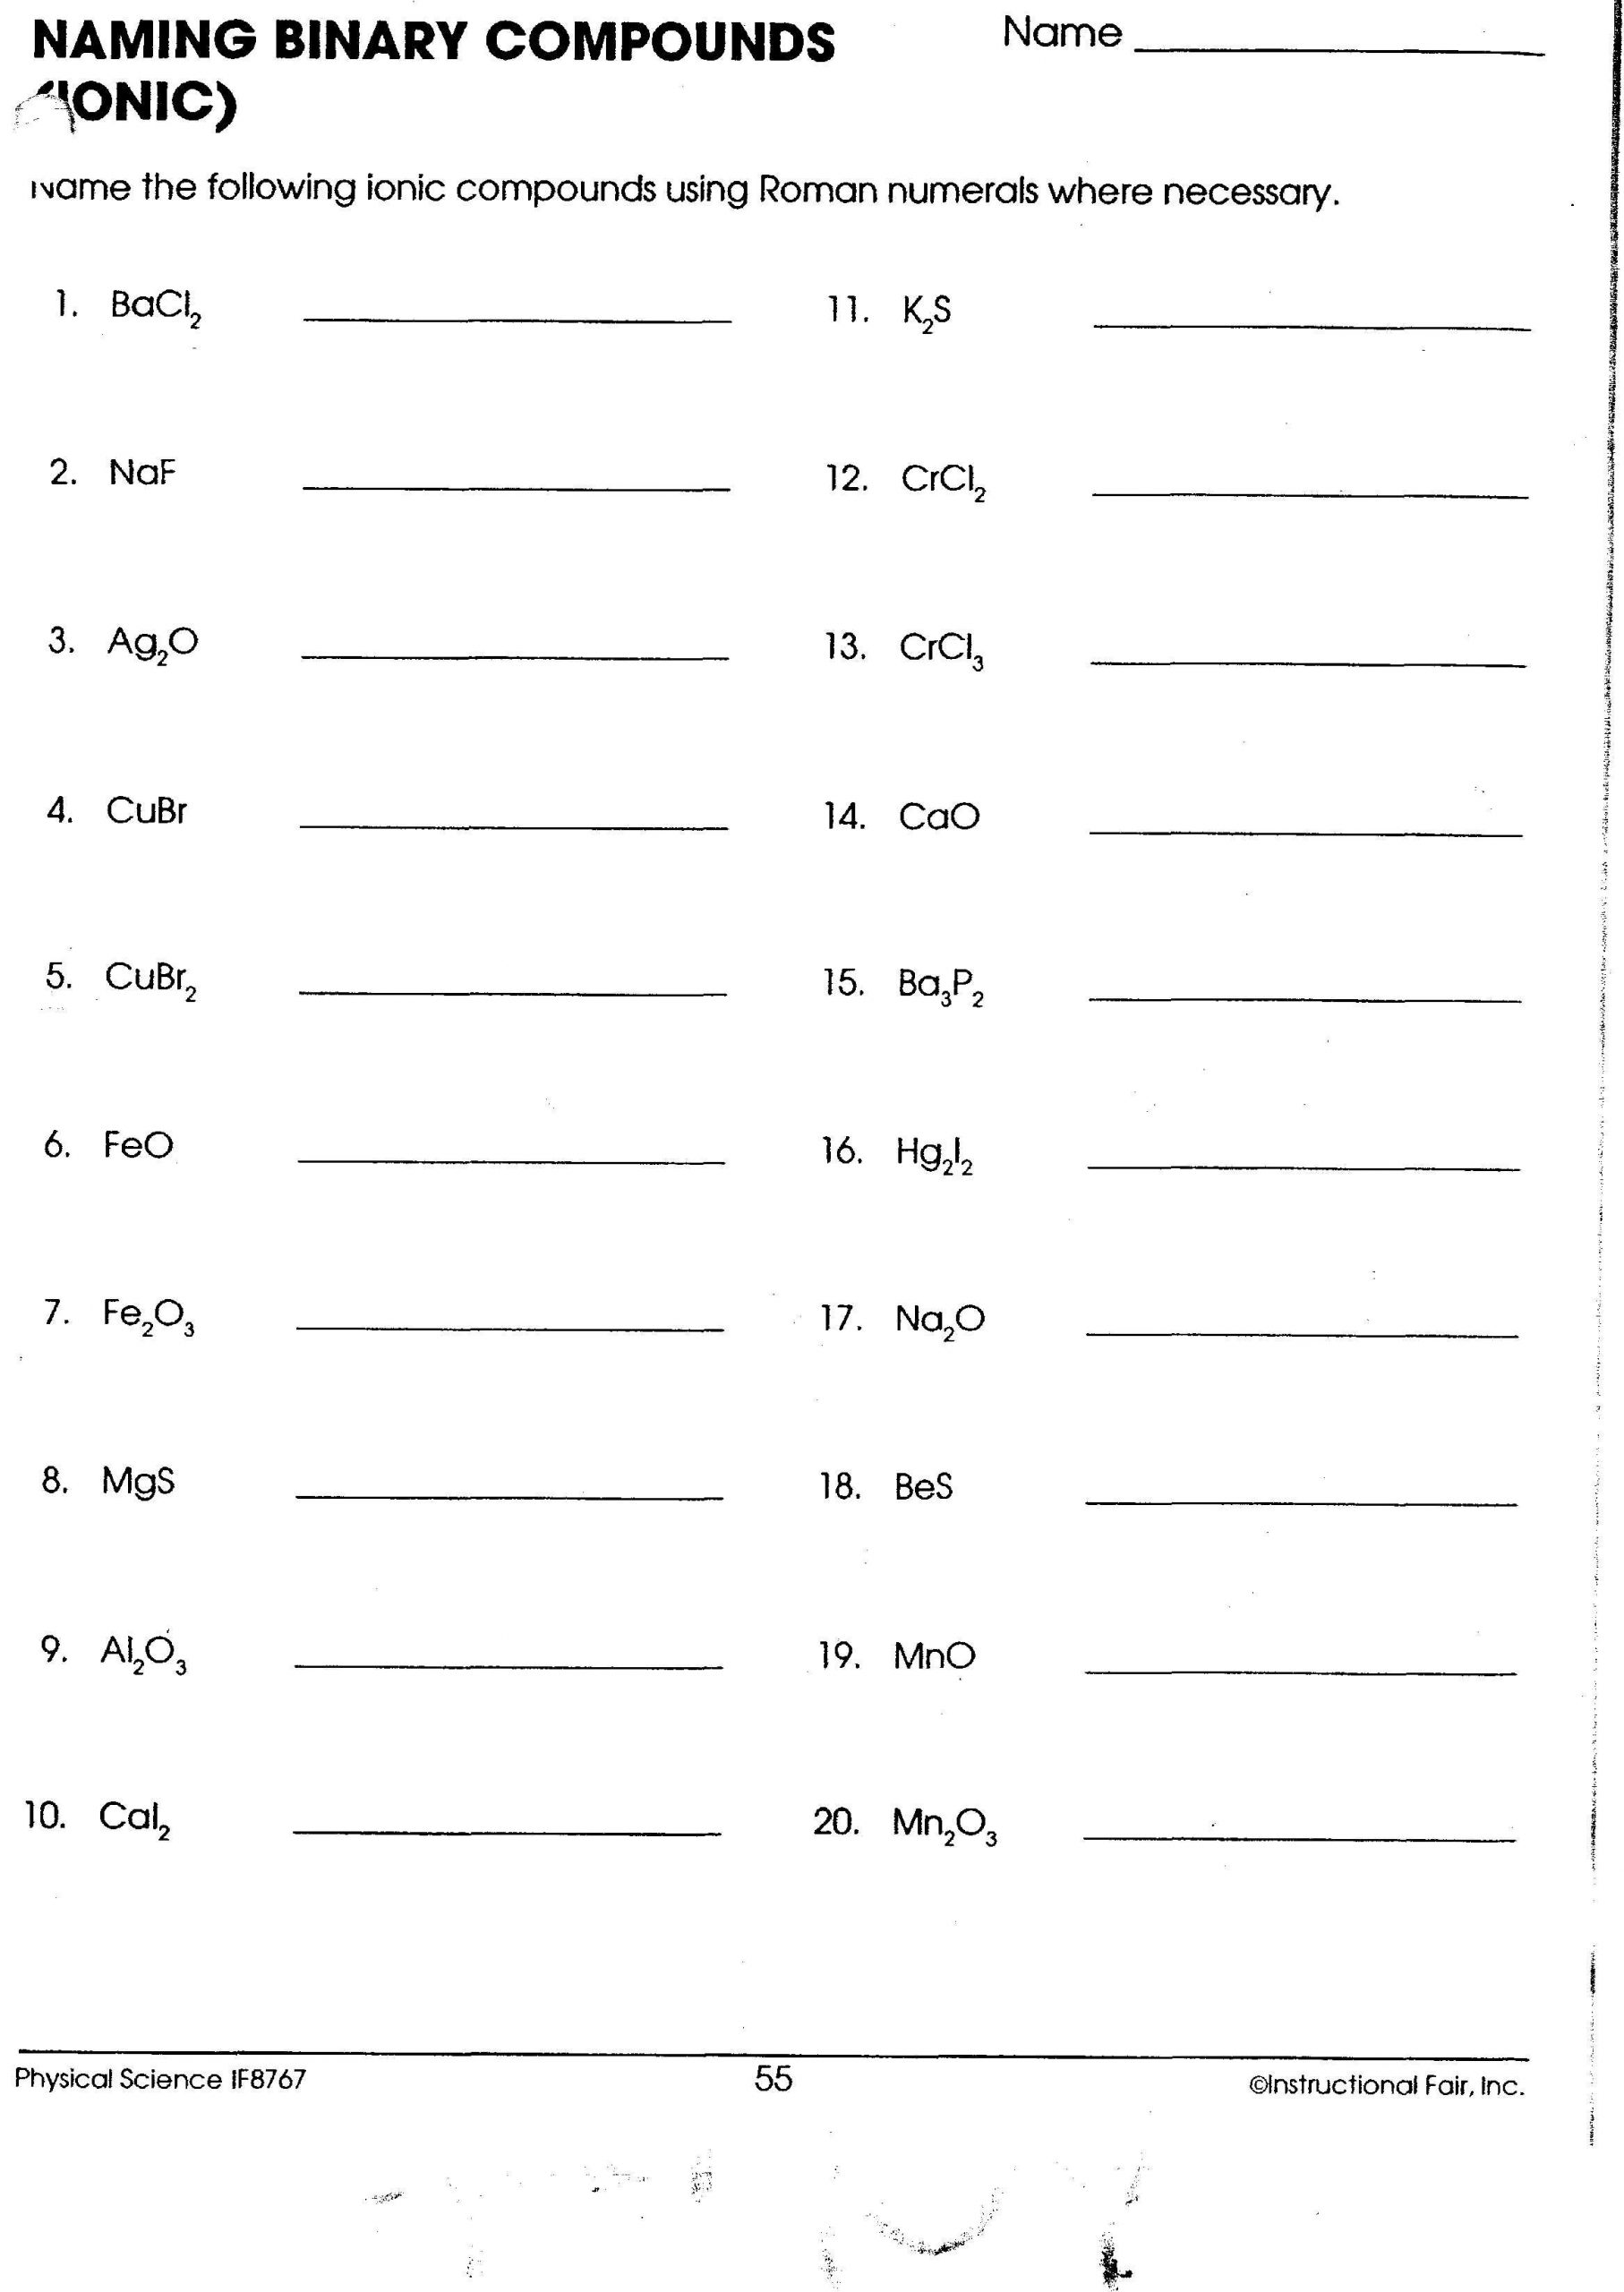 31 Naming Molecular Compounds Worksheet Answers